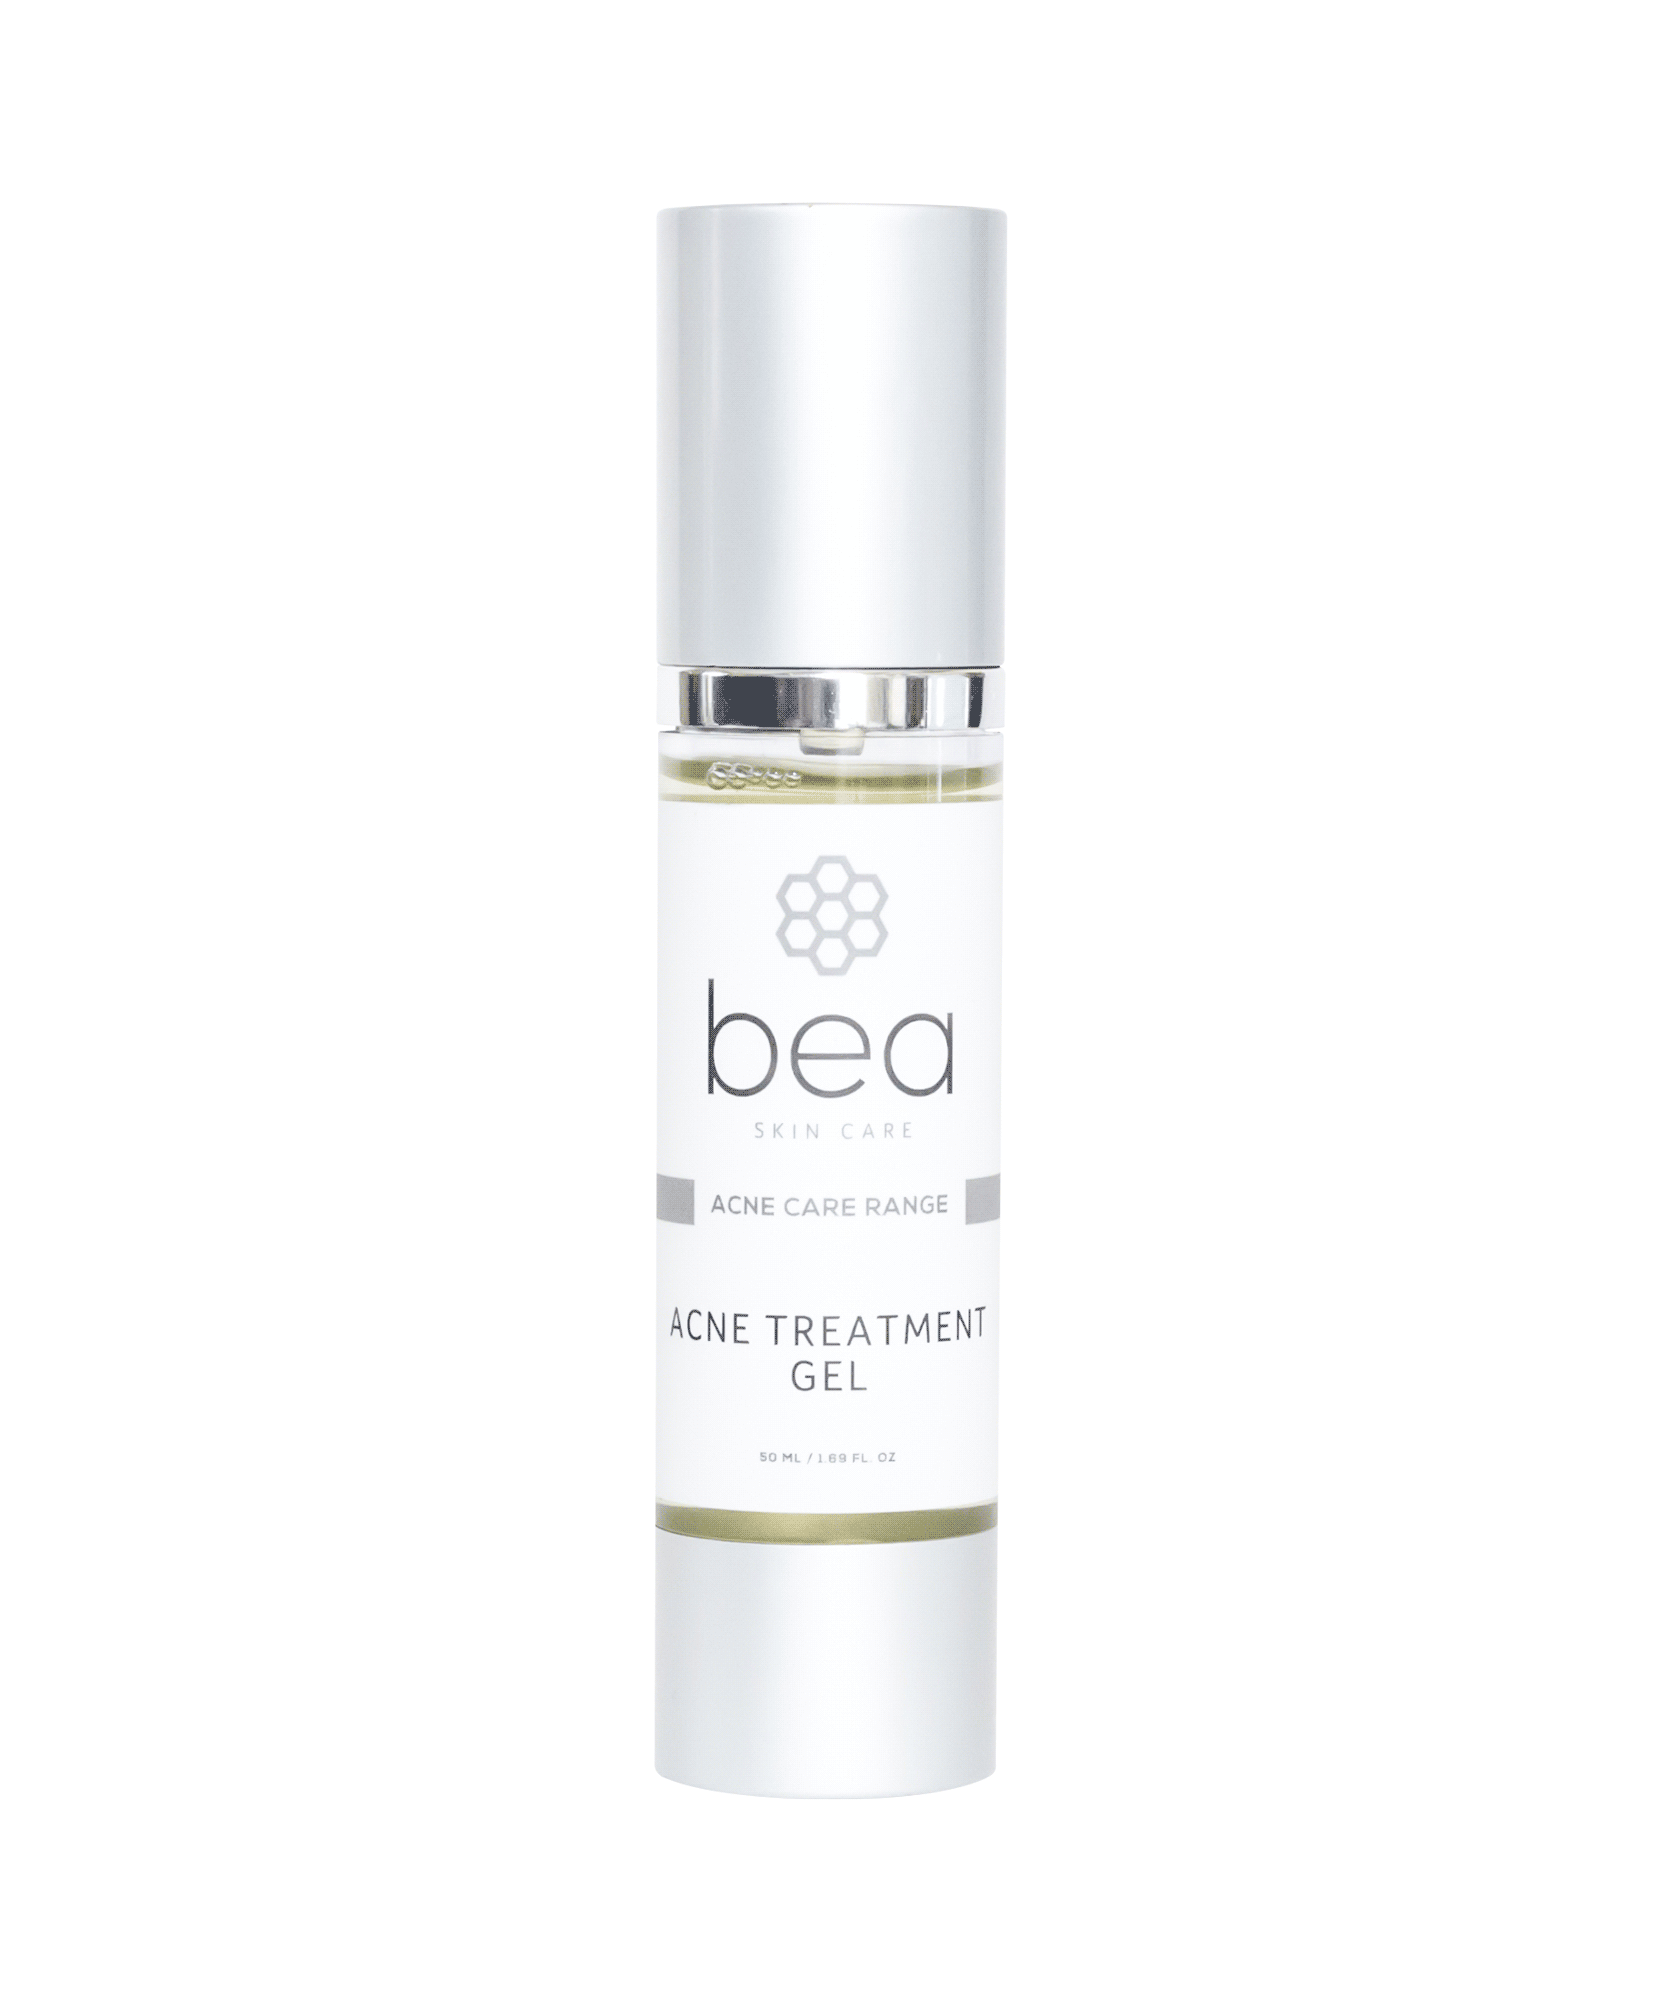 Acne Treatment Gel - 50 ml Acne Gel bea Skin Care